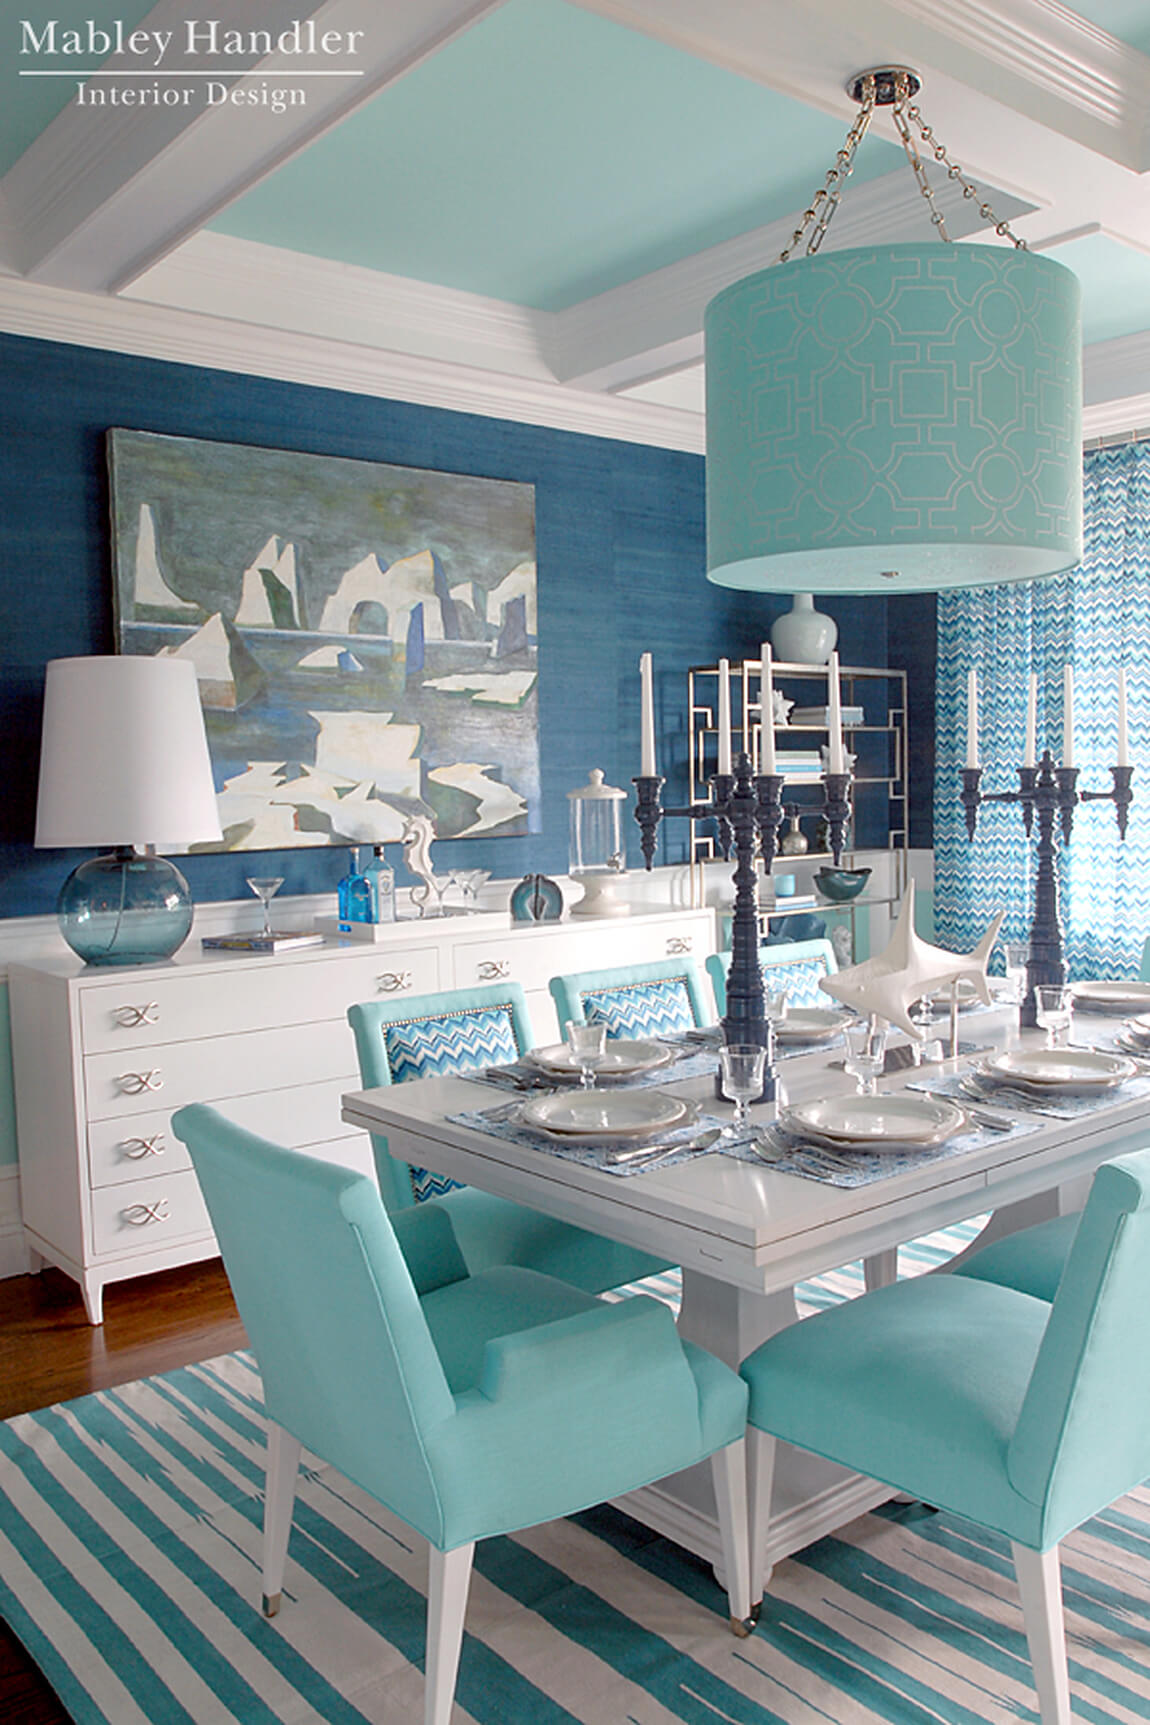 1. Cool Sea Blues Compliment Your Dining Space